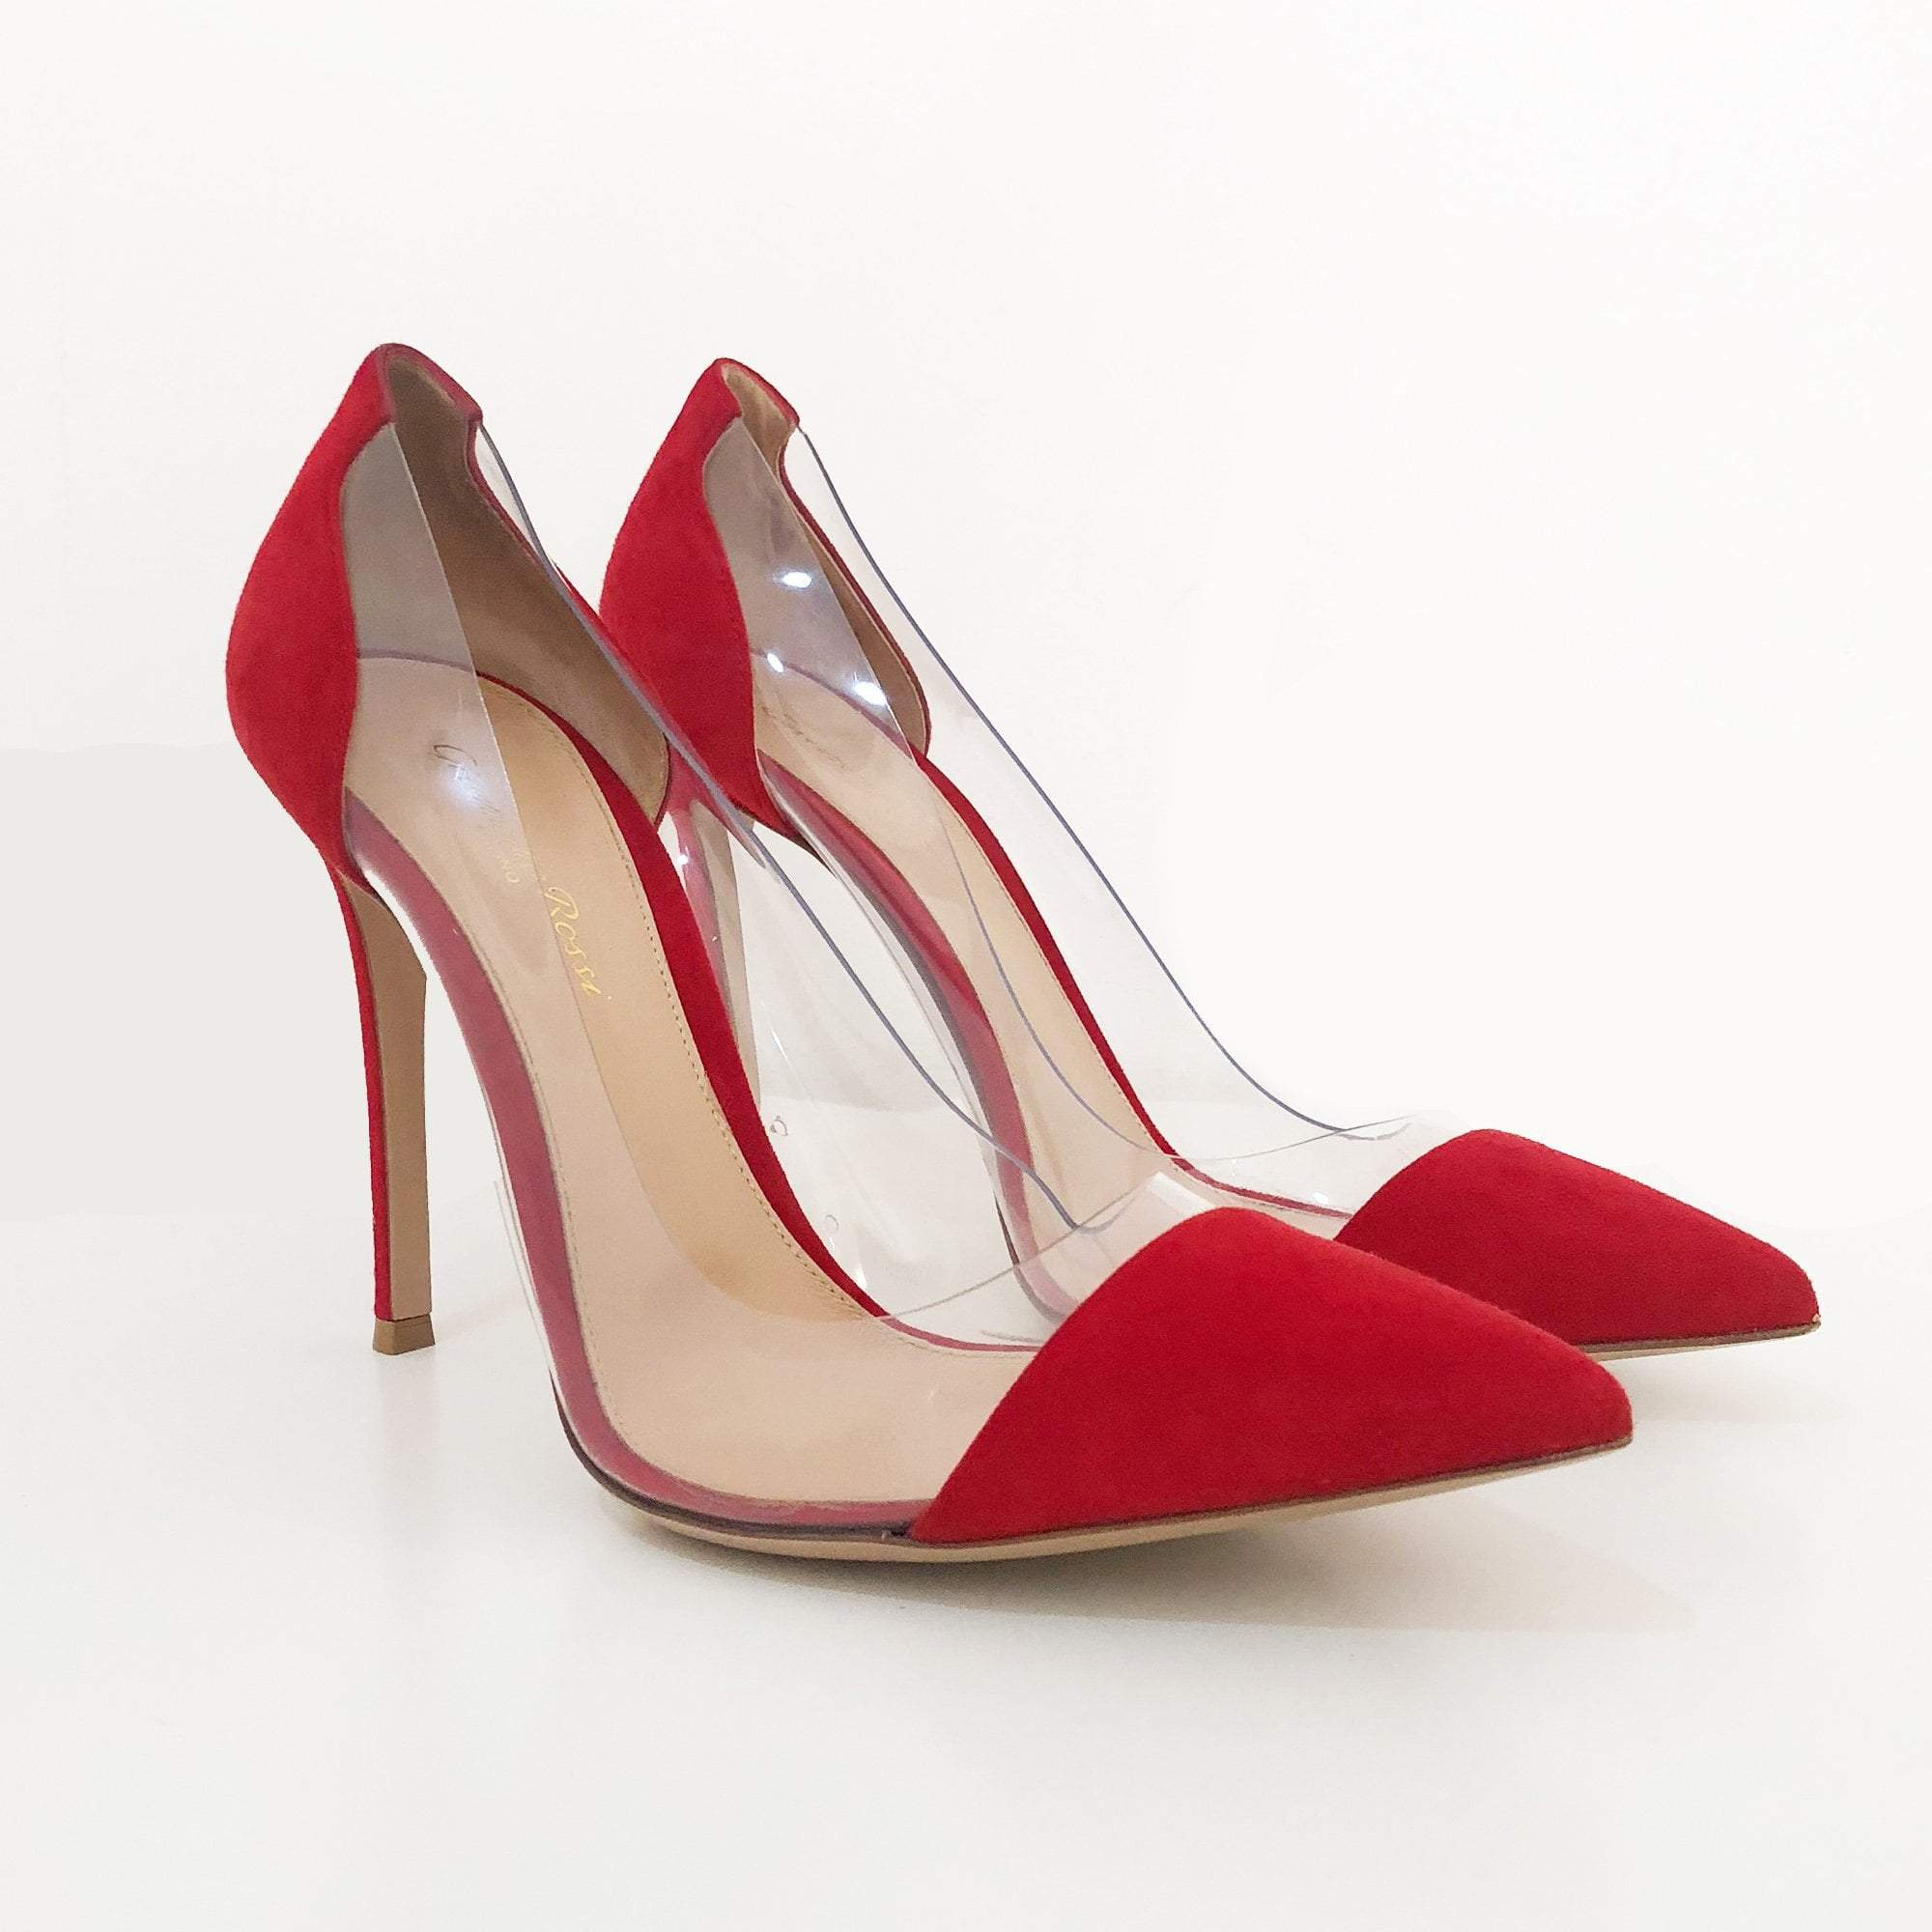 Gianvito Rossi Red Suede and PVC Pumps